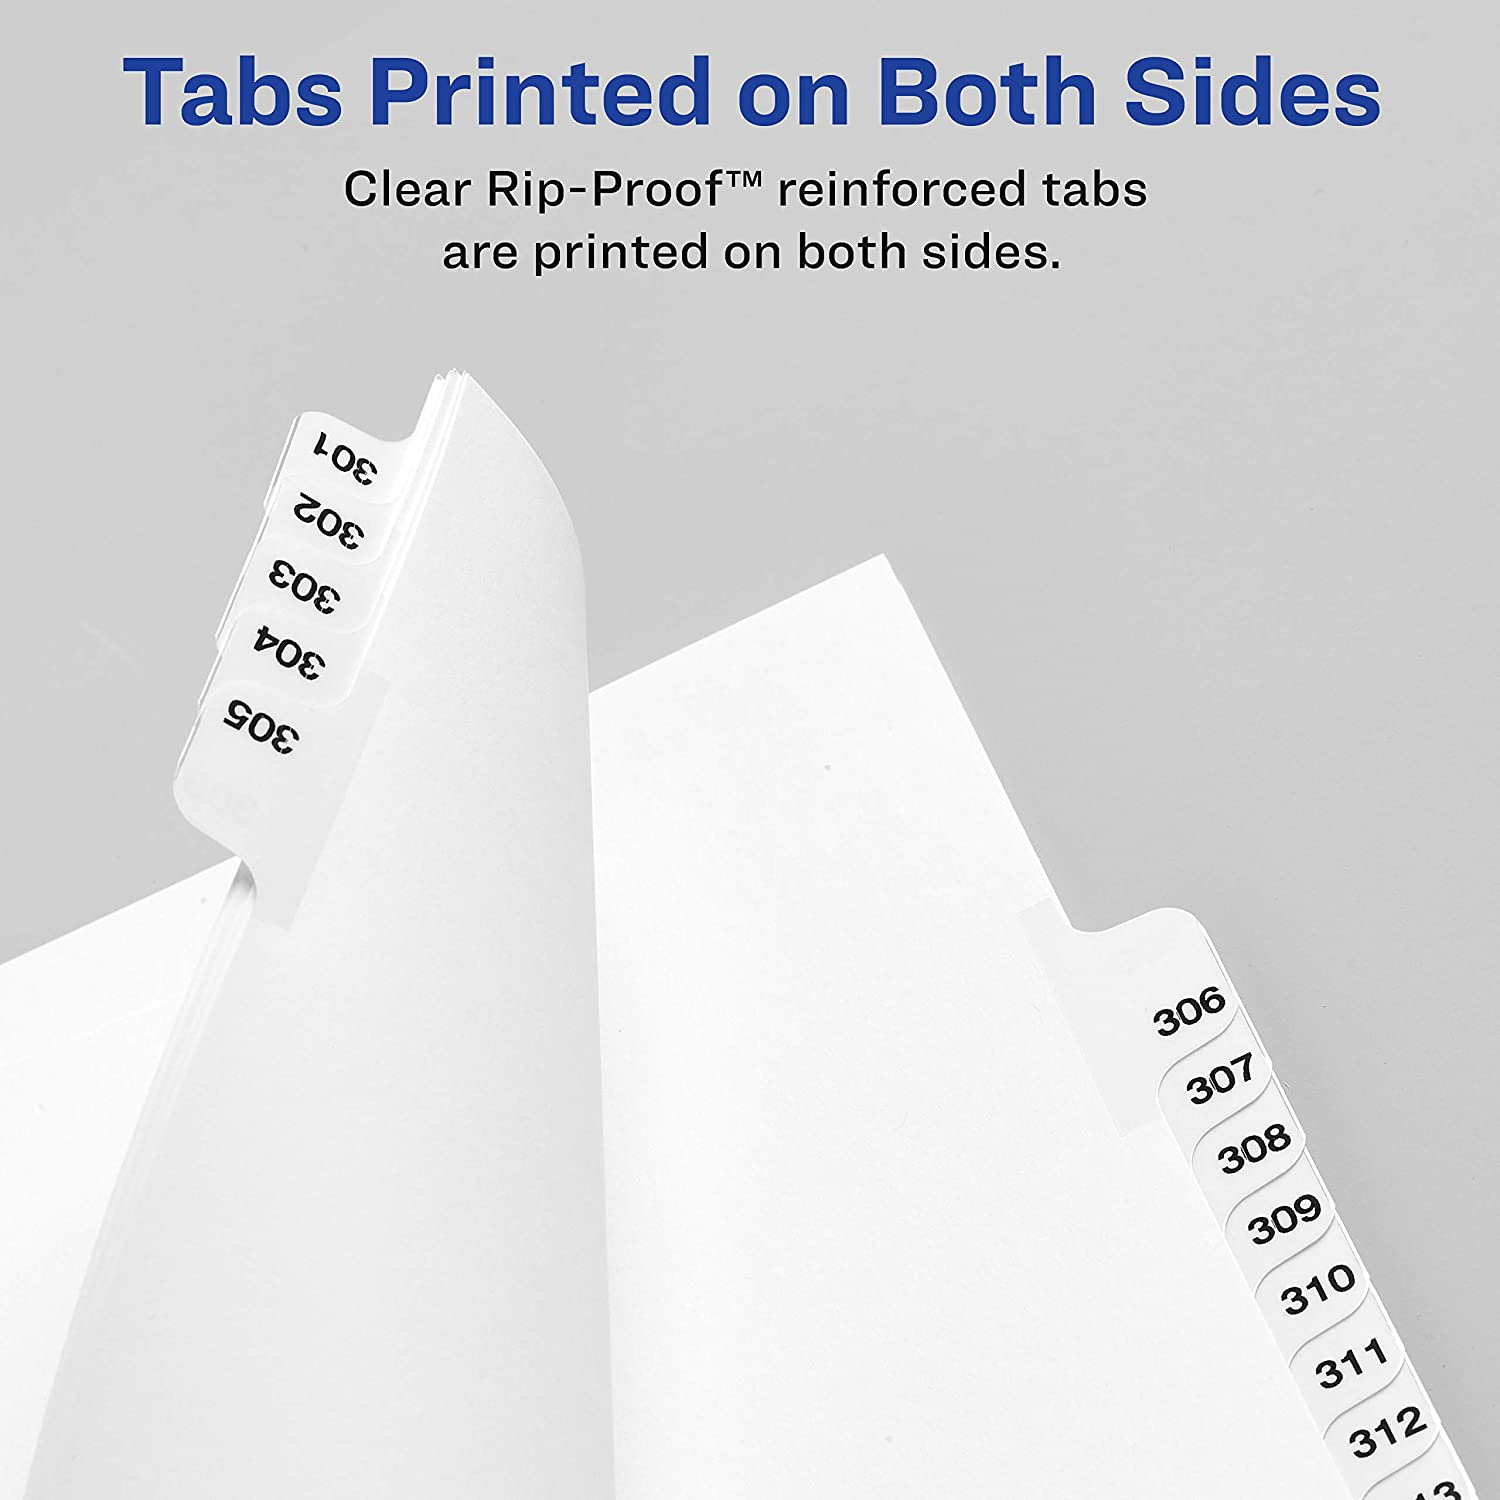 Avery Individual Legal Exhibit Dividers, Avery Style, 2, Side Tab, 8.5 x 11 inches, Pack of 25 (11912), White : Binder Index Dividers : Office Products